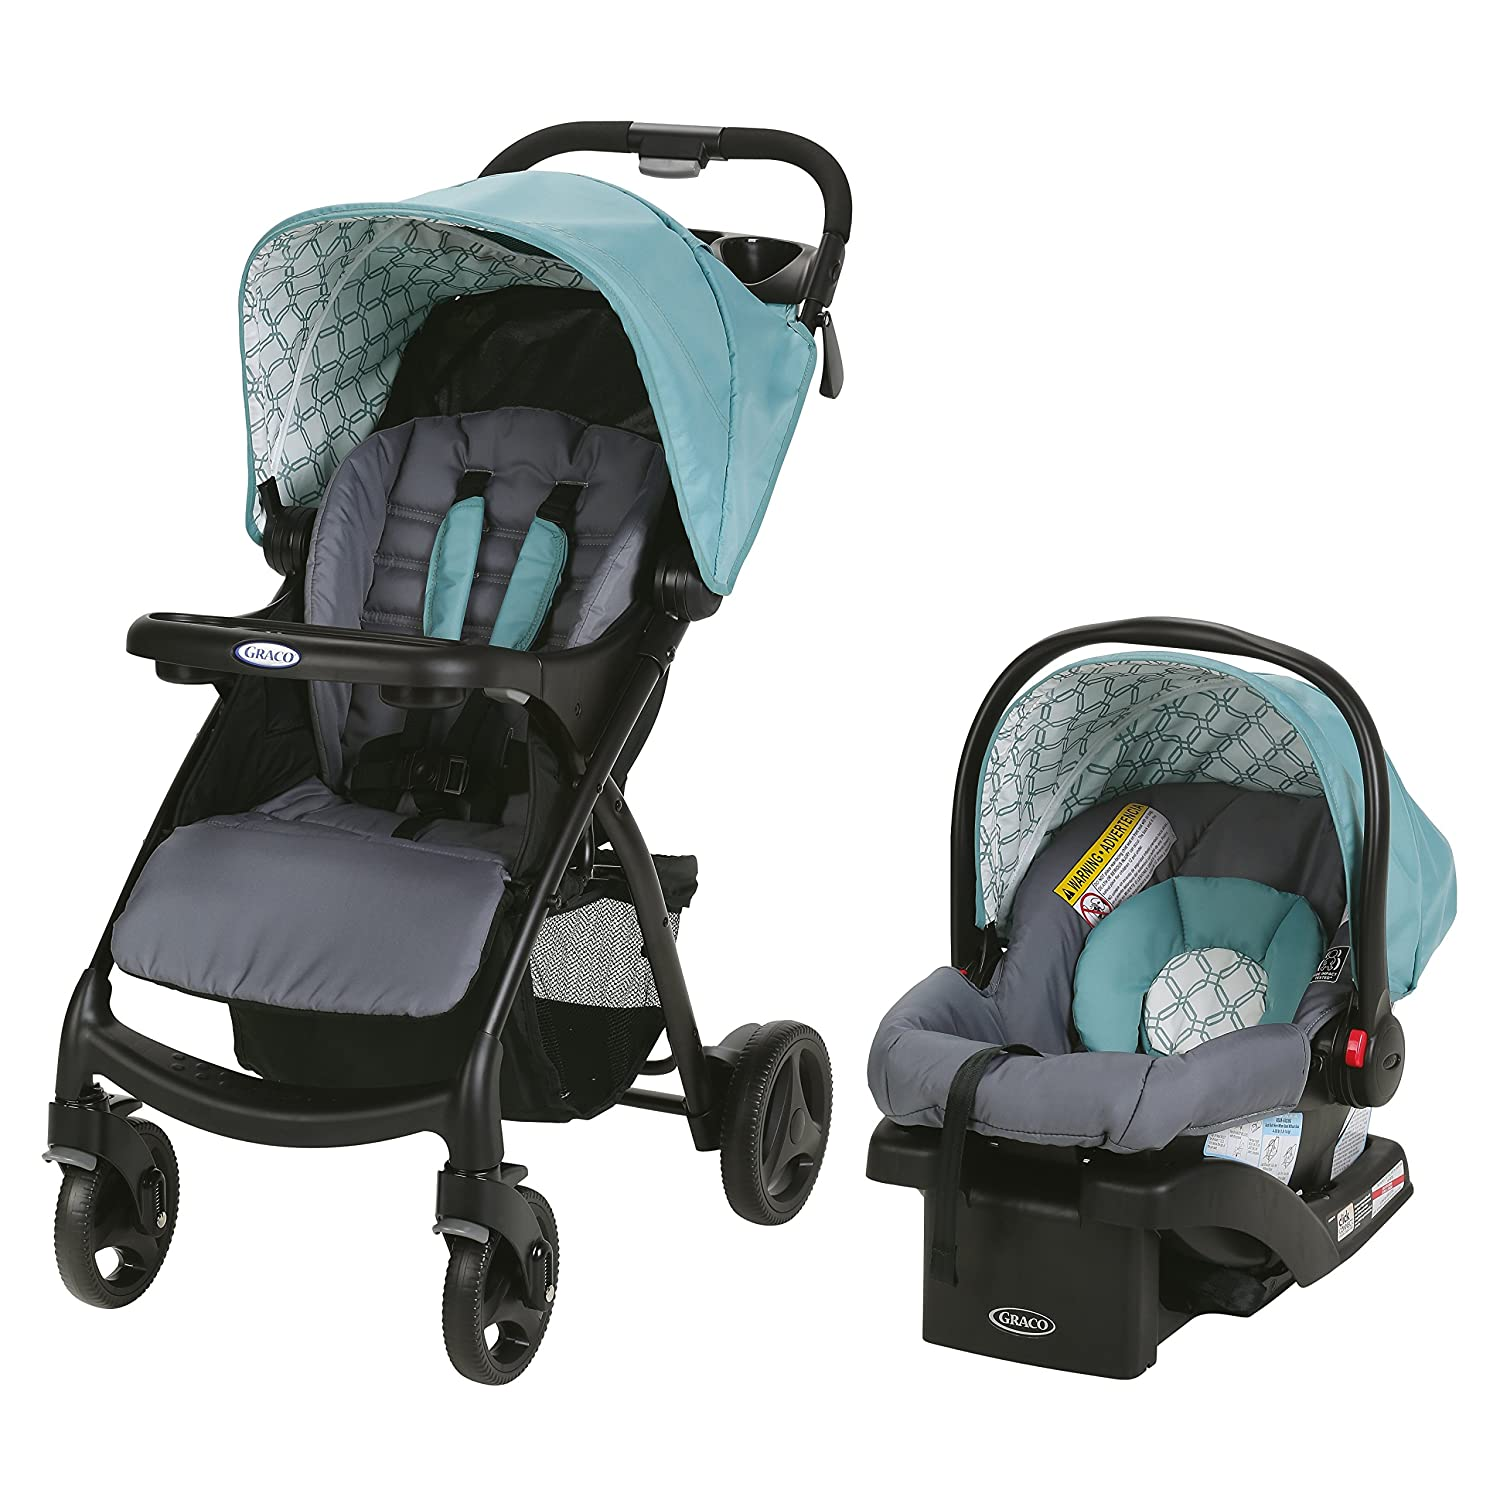 Graco Verb Click Connect Travel System, Merrick Graco Baby 2047762